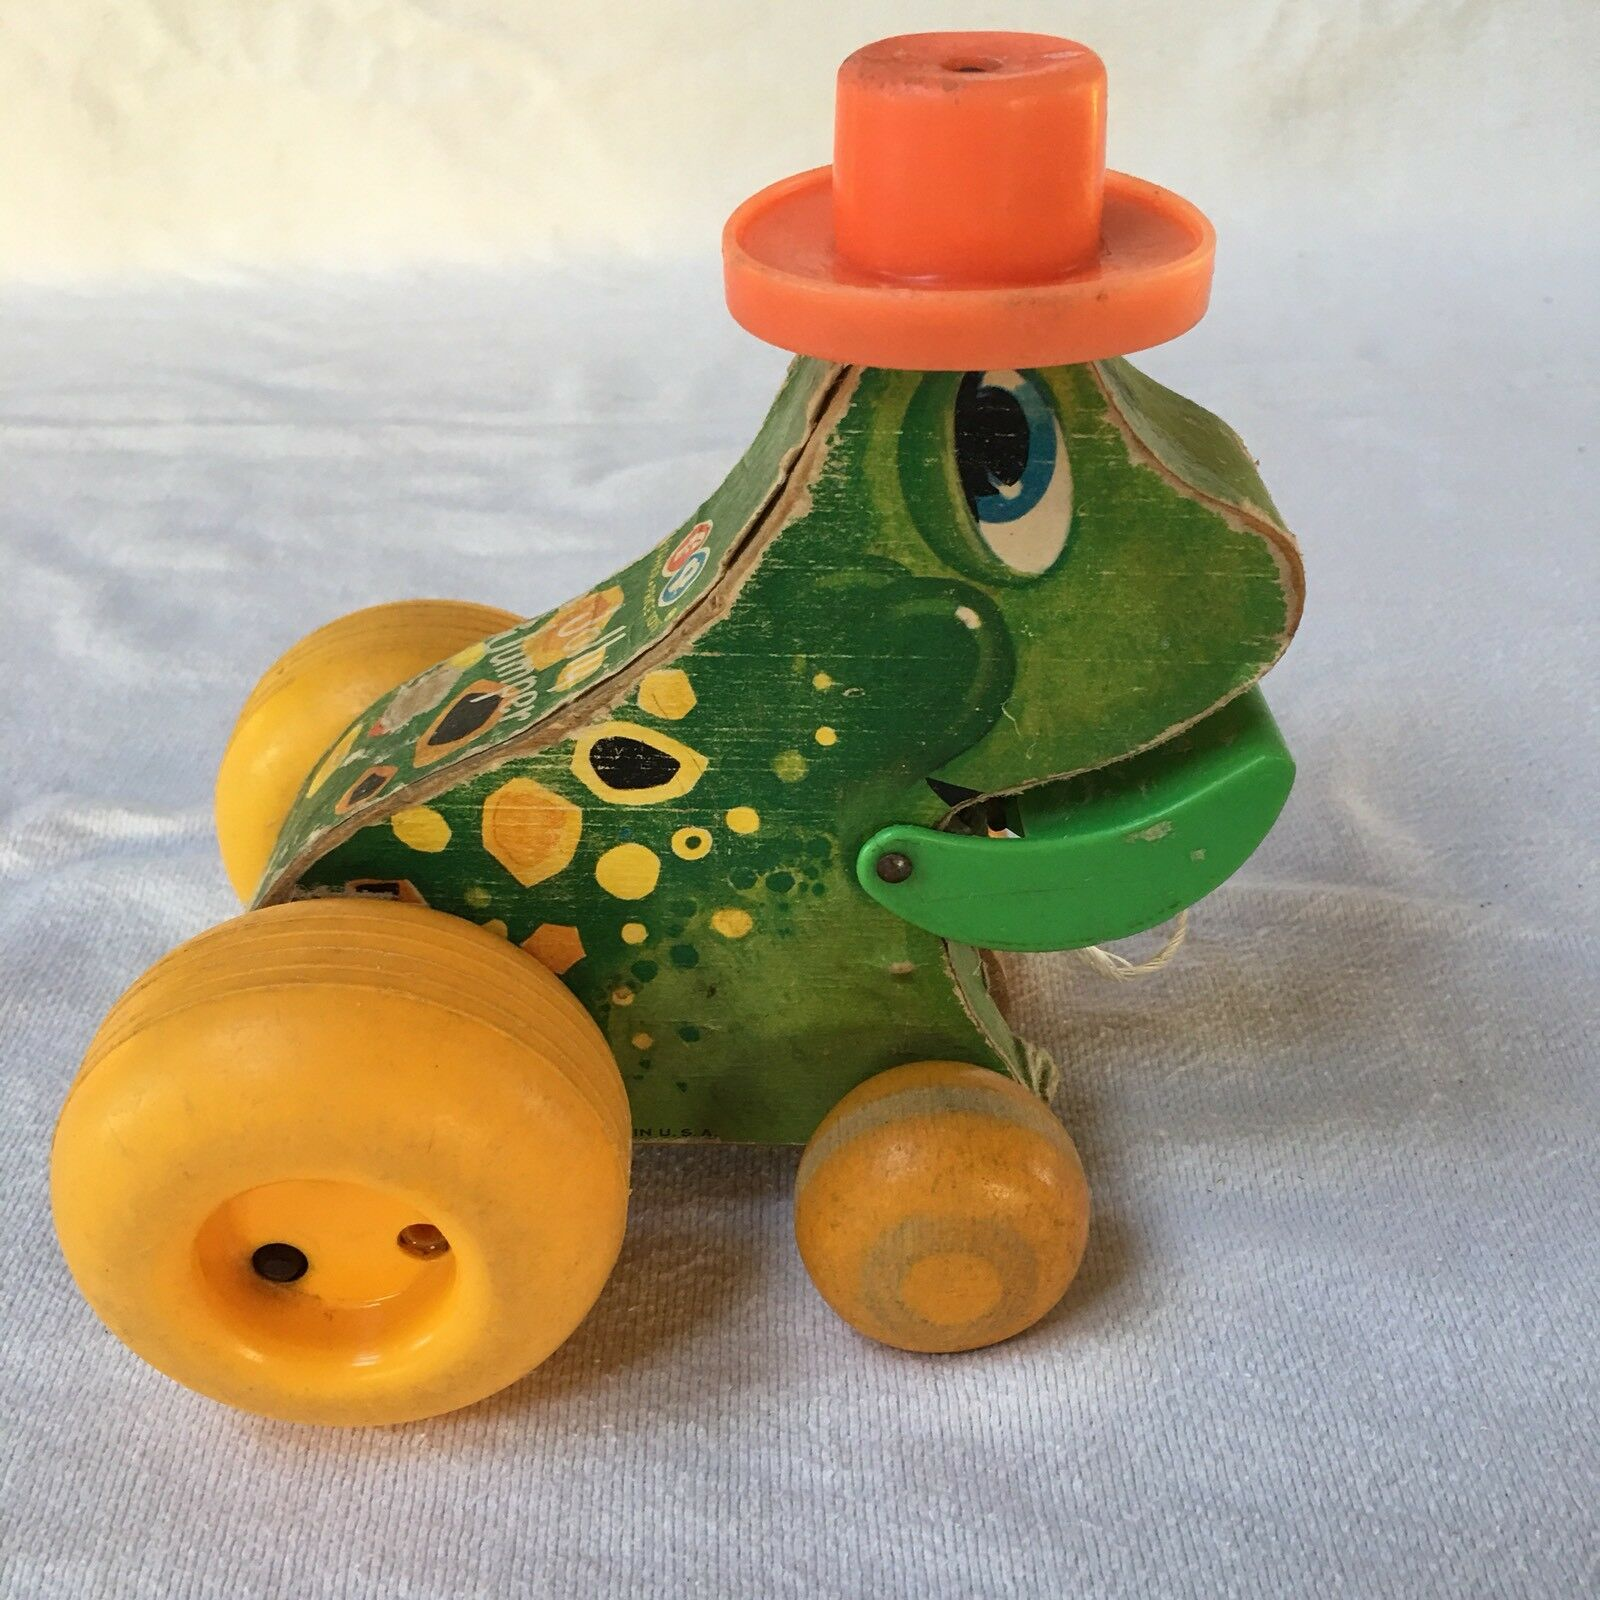 793 Fisher Price Toys c'63 Jolly Jolly Jolly Jumper frog wood pull toy 15b266